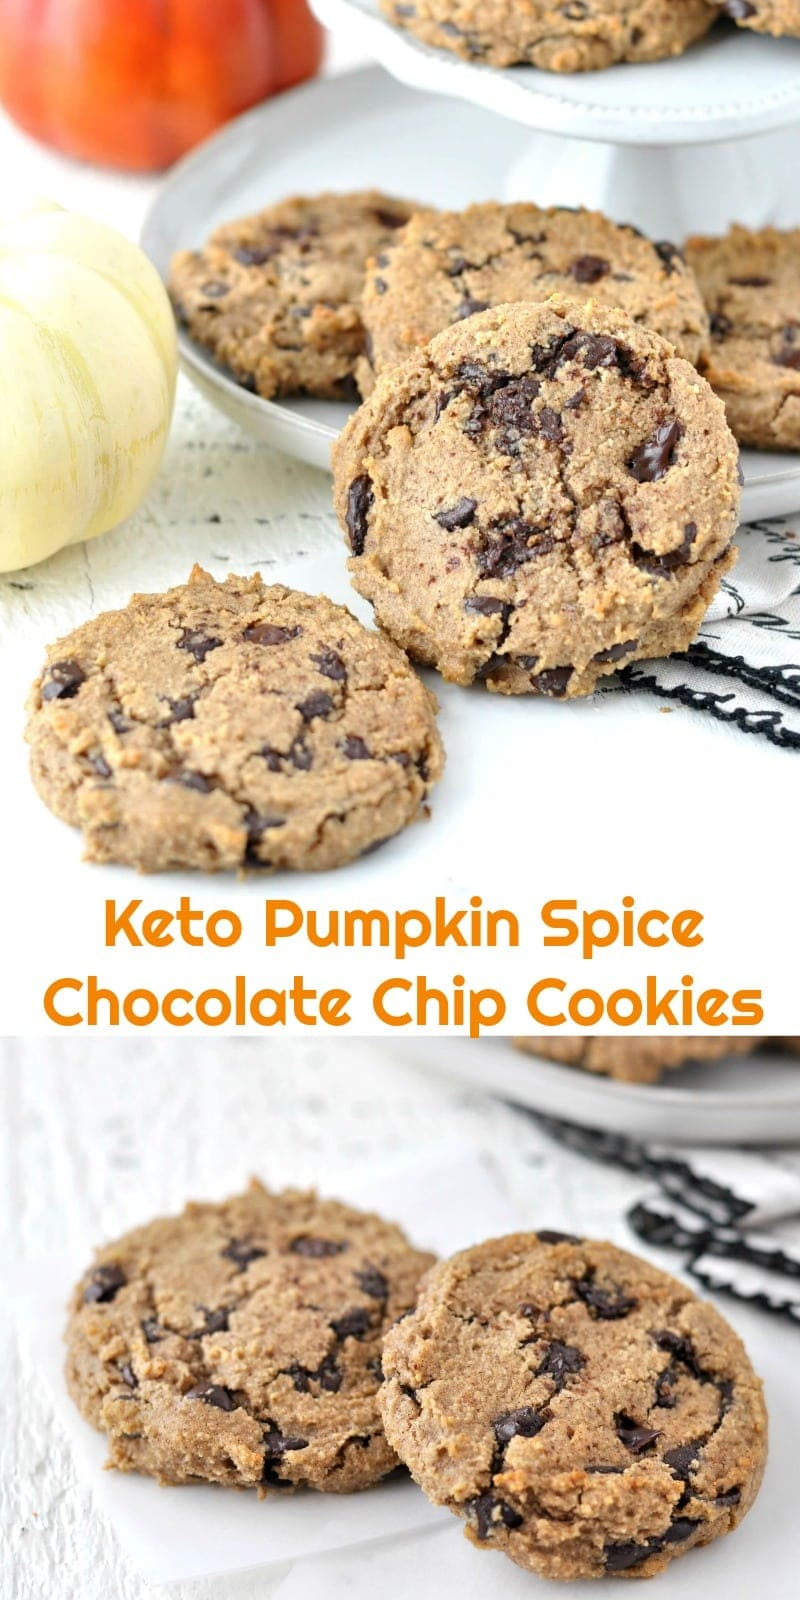 Keto Pumpkin Spice Chocolate Chip Cookies | Peace Love and Low Carb #pumpkin #lowcarbrecipe #ketorecipes #keto #lowcarb #glutenfree